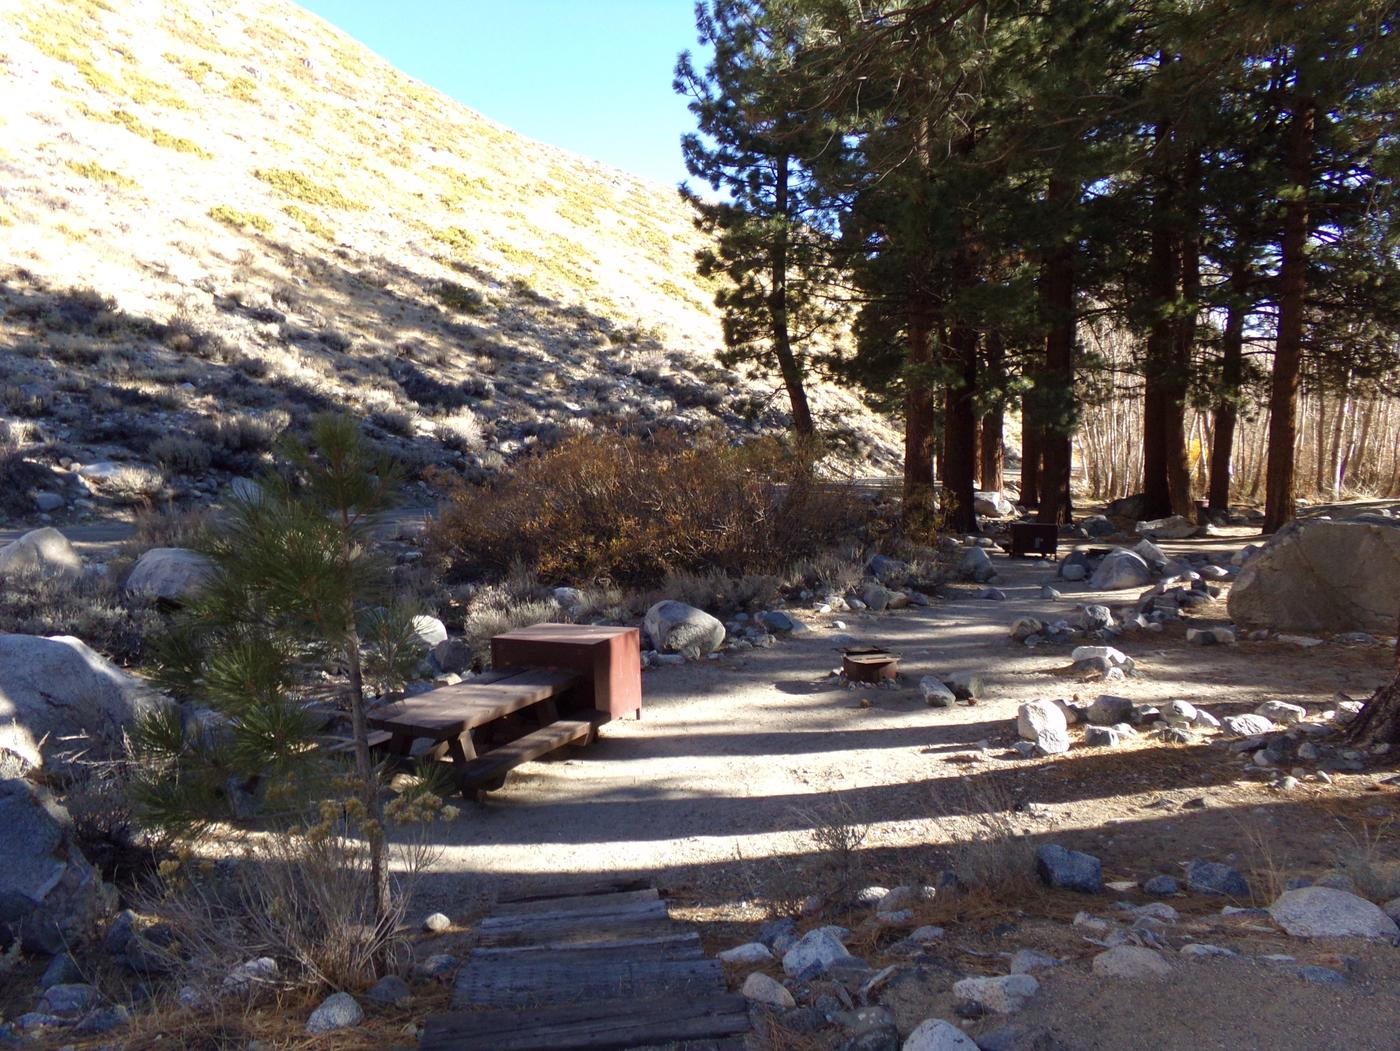 Upper Sage Flat Campground site #14 featuring picnic table, food storage, and fire pit.